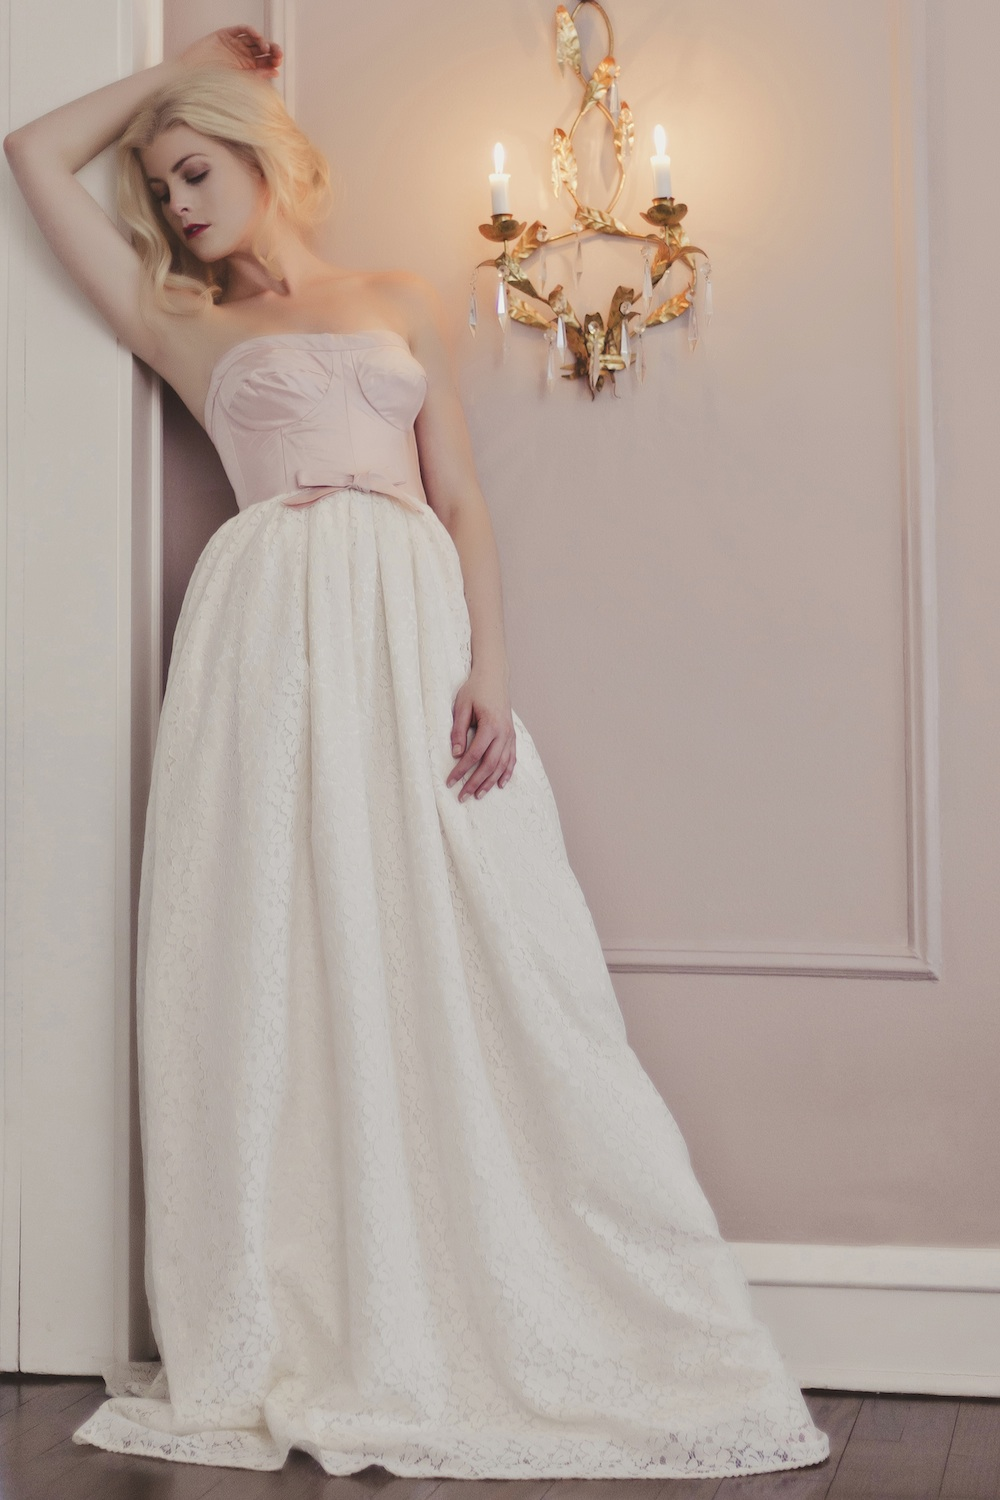 Veronica Sheaffer Peony Wedding Gown with Bodice Top and Ivory Lace Skirt